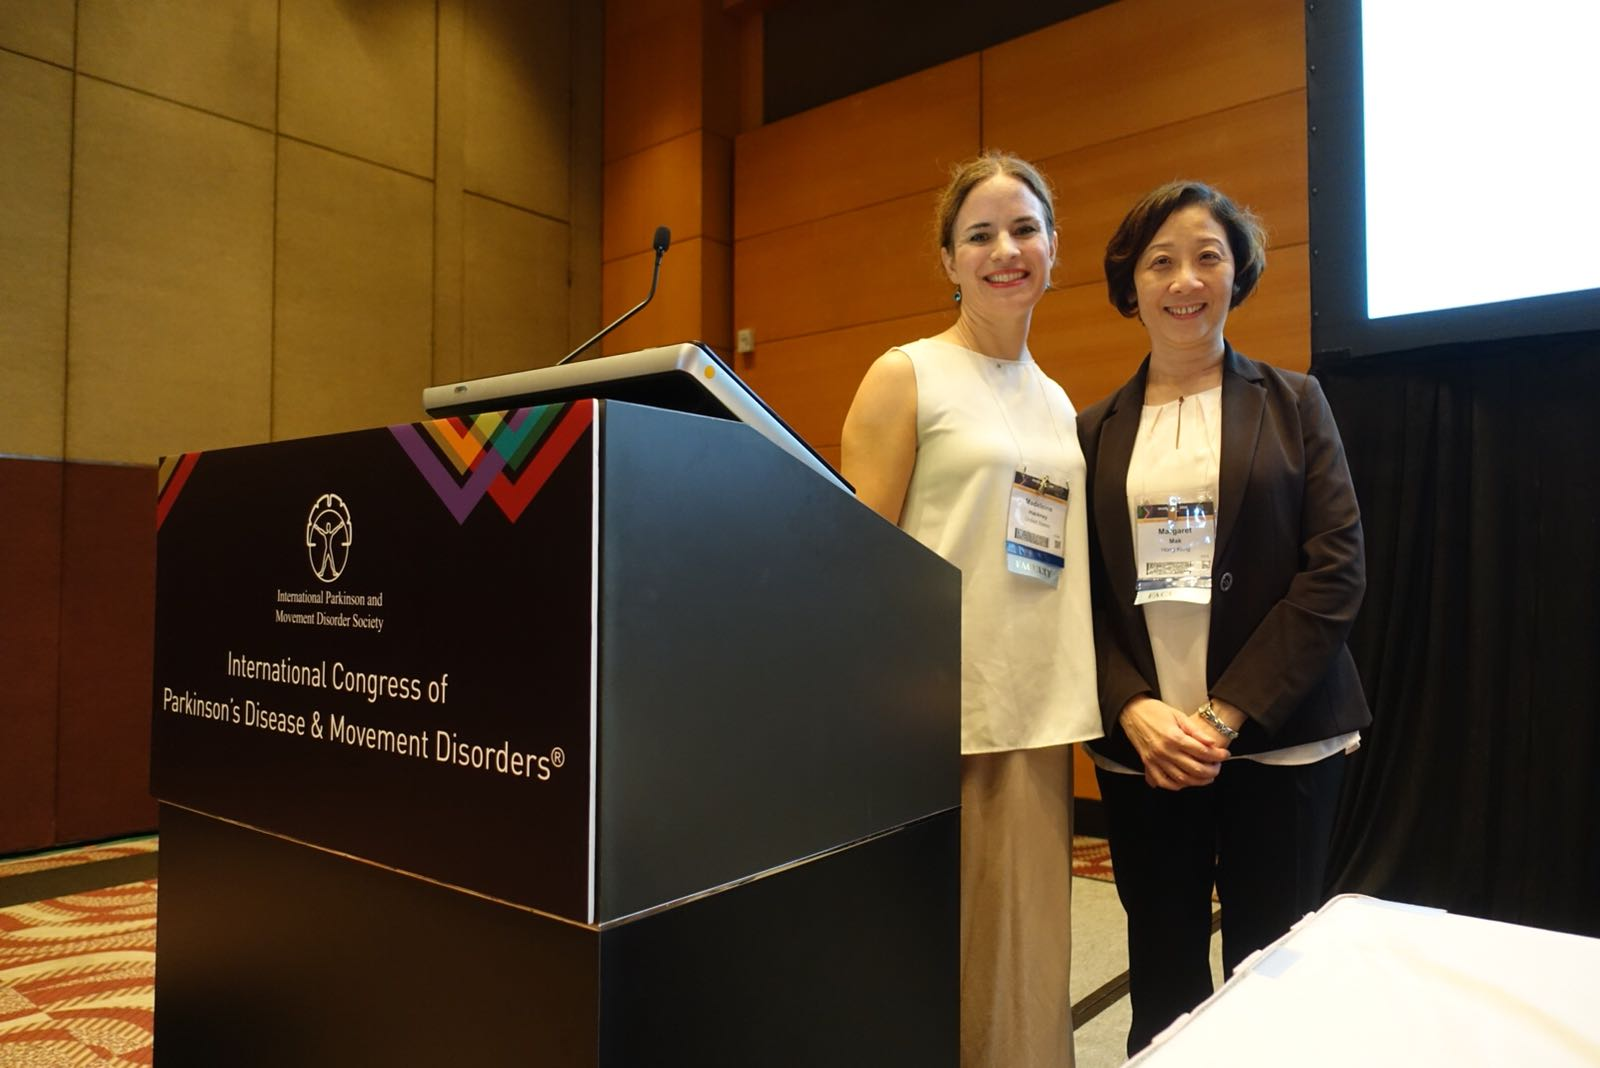 Recent Accomplishments - In October, MDT co-founder Dr. Madeleine Hackney spoke with Dr. Margaret Mak of Polytechnic University, Hong Kong, at the 2018 International Congress of Parkinson's Disease and Movement Disorders in Hong Kong. They described exercise therapies that are currently popular for people with PD, including Tai Chi, boxing, dance and nordic walking. They provided evidence supporting the efficacy of these therapies and discussed underlying principles of safe exercise for people with PD.Congratulations Dr. Hackney!